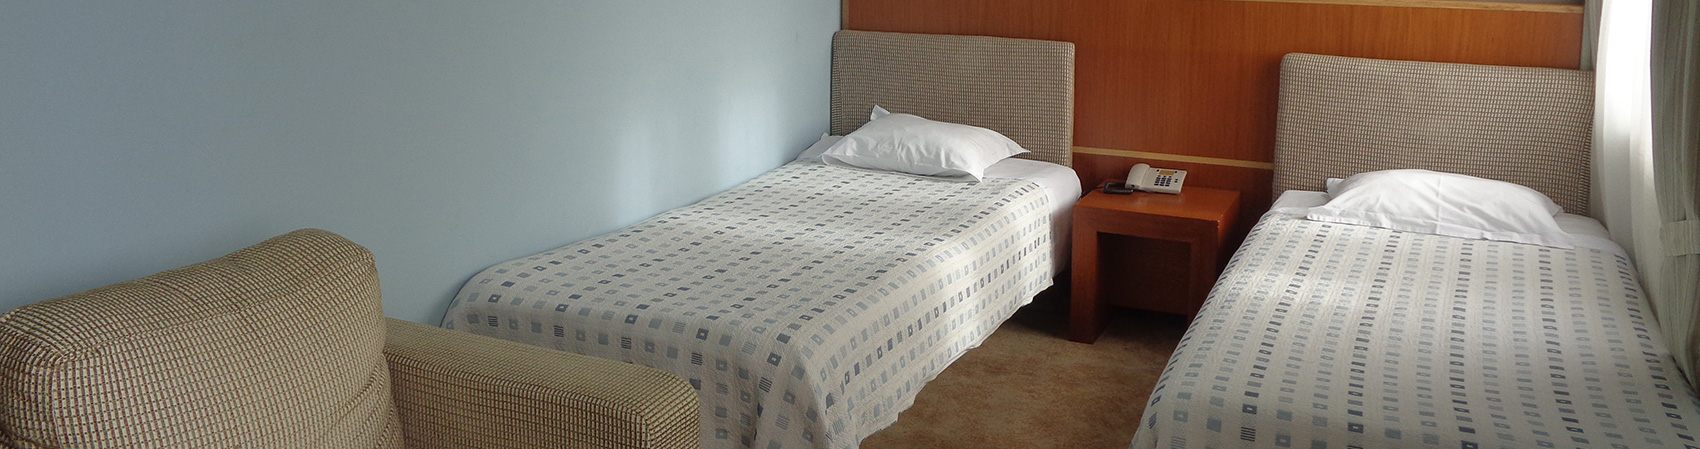 rooms-2-bed